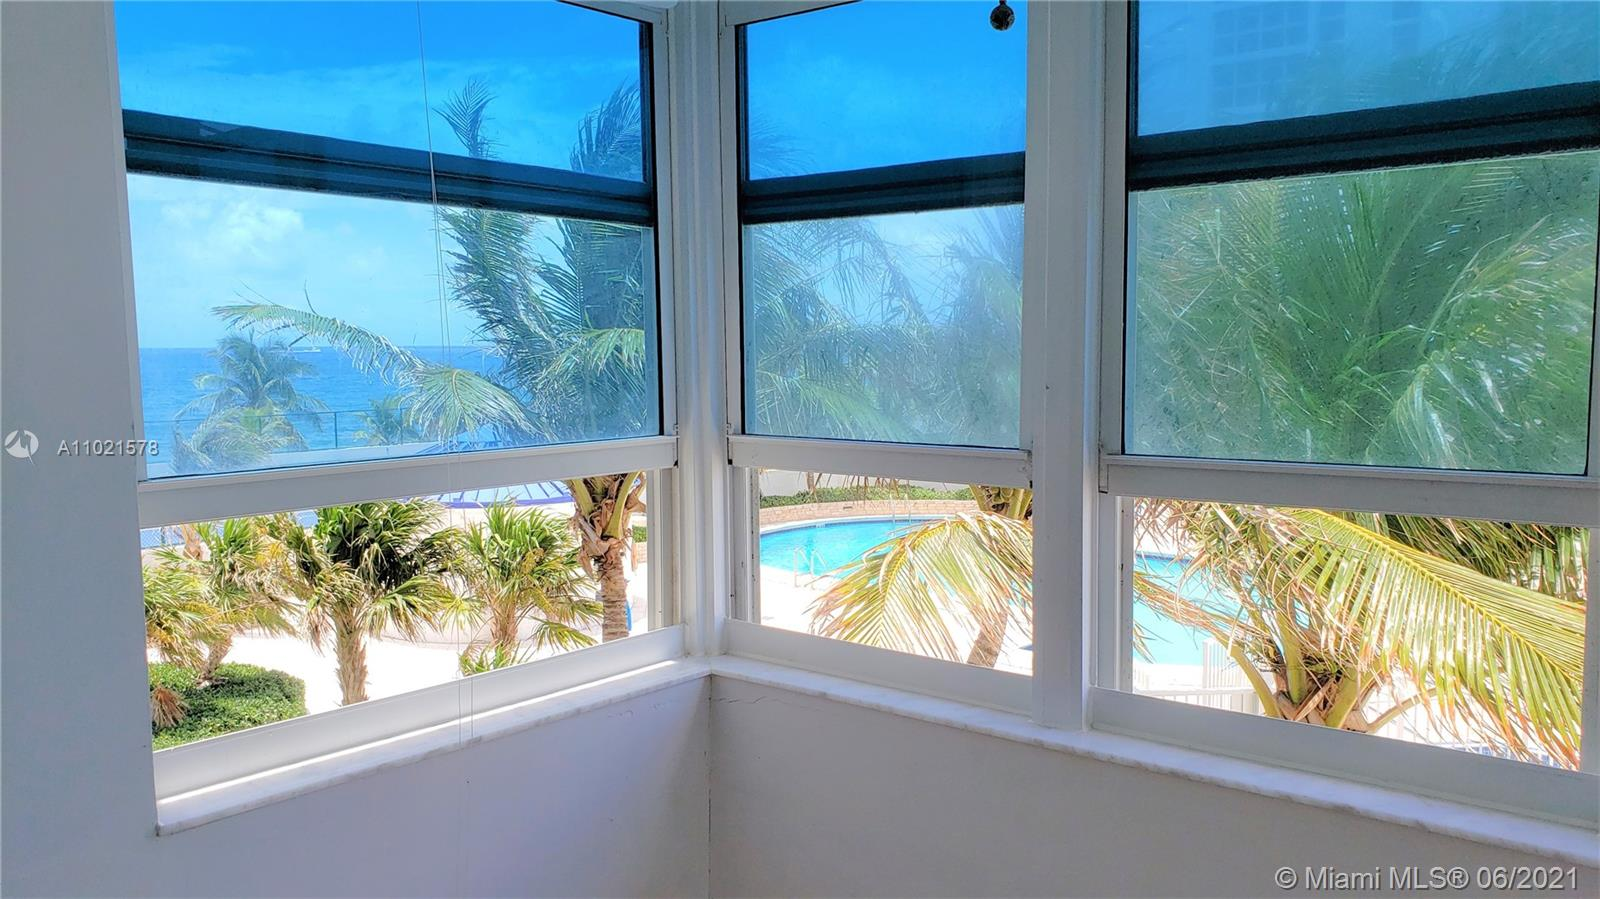 GREAT LOCATION AND AMAZING OCEAN VIEWS , OPPORTUNITY KNOCKS AGAIN. THE BUILDING OFFER MANY AMMENITIES, INCLUDING POOL, READING ROOM, GYM, BBQ AREA. YOU WILL CERTAINLY LOVE IT